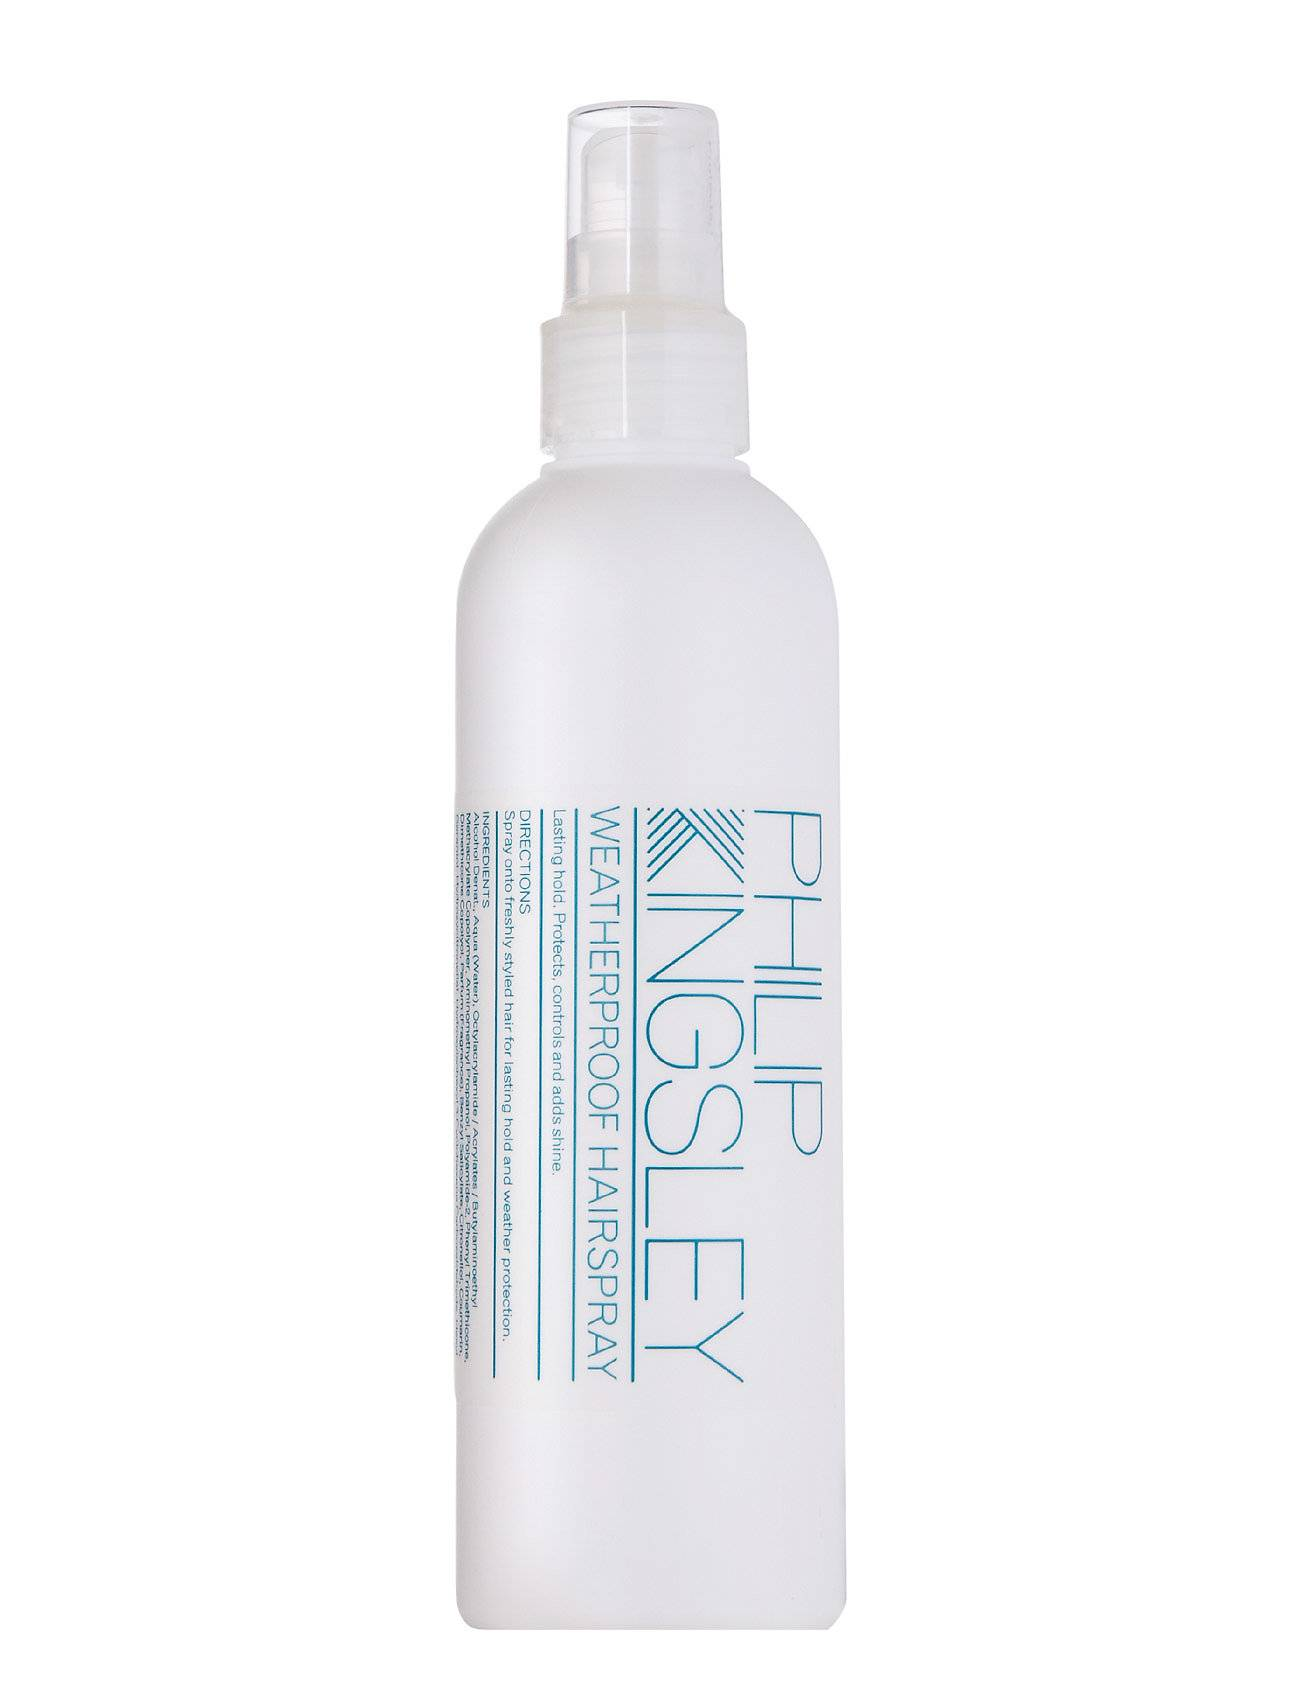 Philip Kingsley Weatherproof Hair Spray